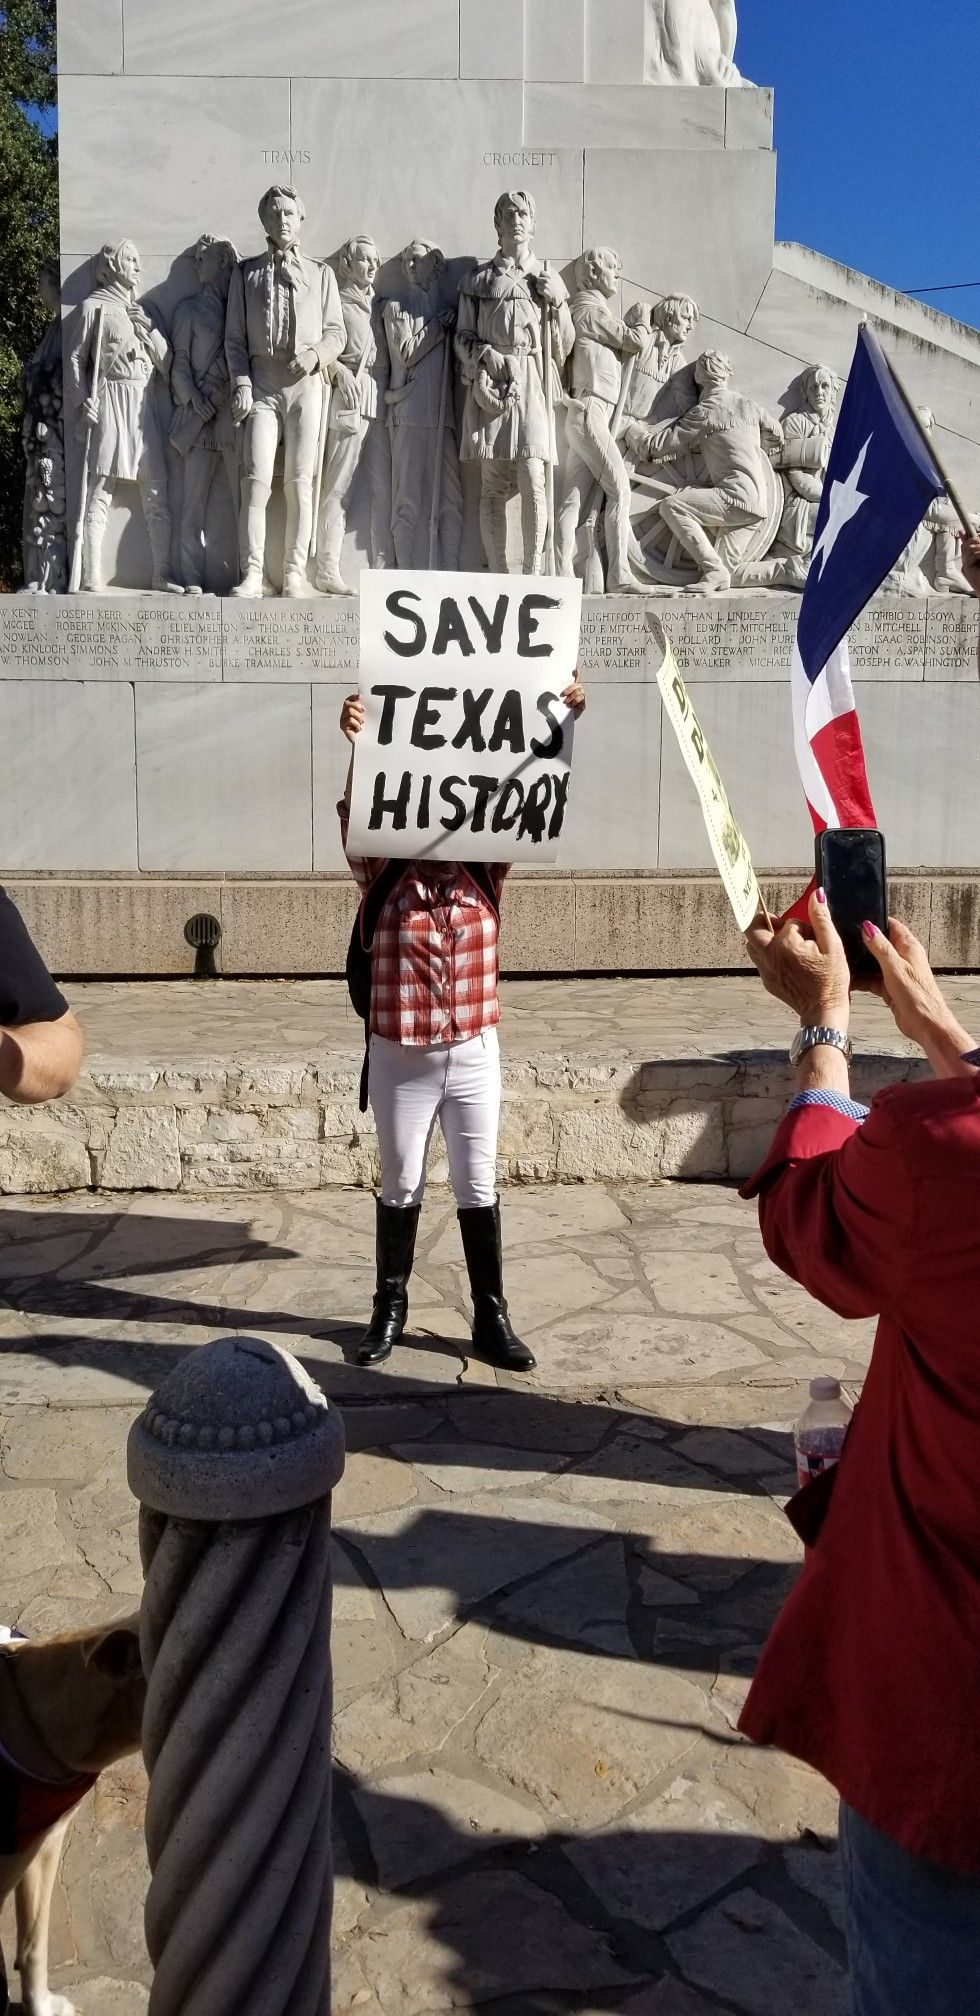 Call Governor Greg Abbott And Tell Him To Stop The Moving Of The Alamo Cenotaph 512 463 2000 Texas History Cenotaph Alamo